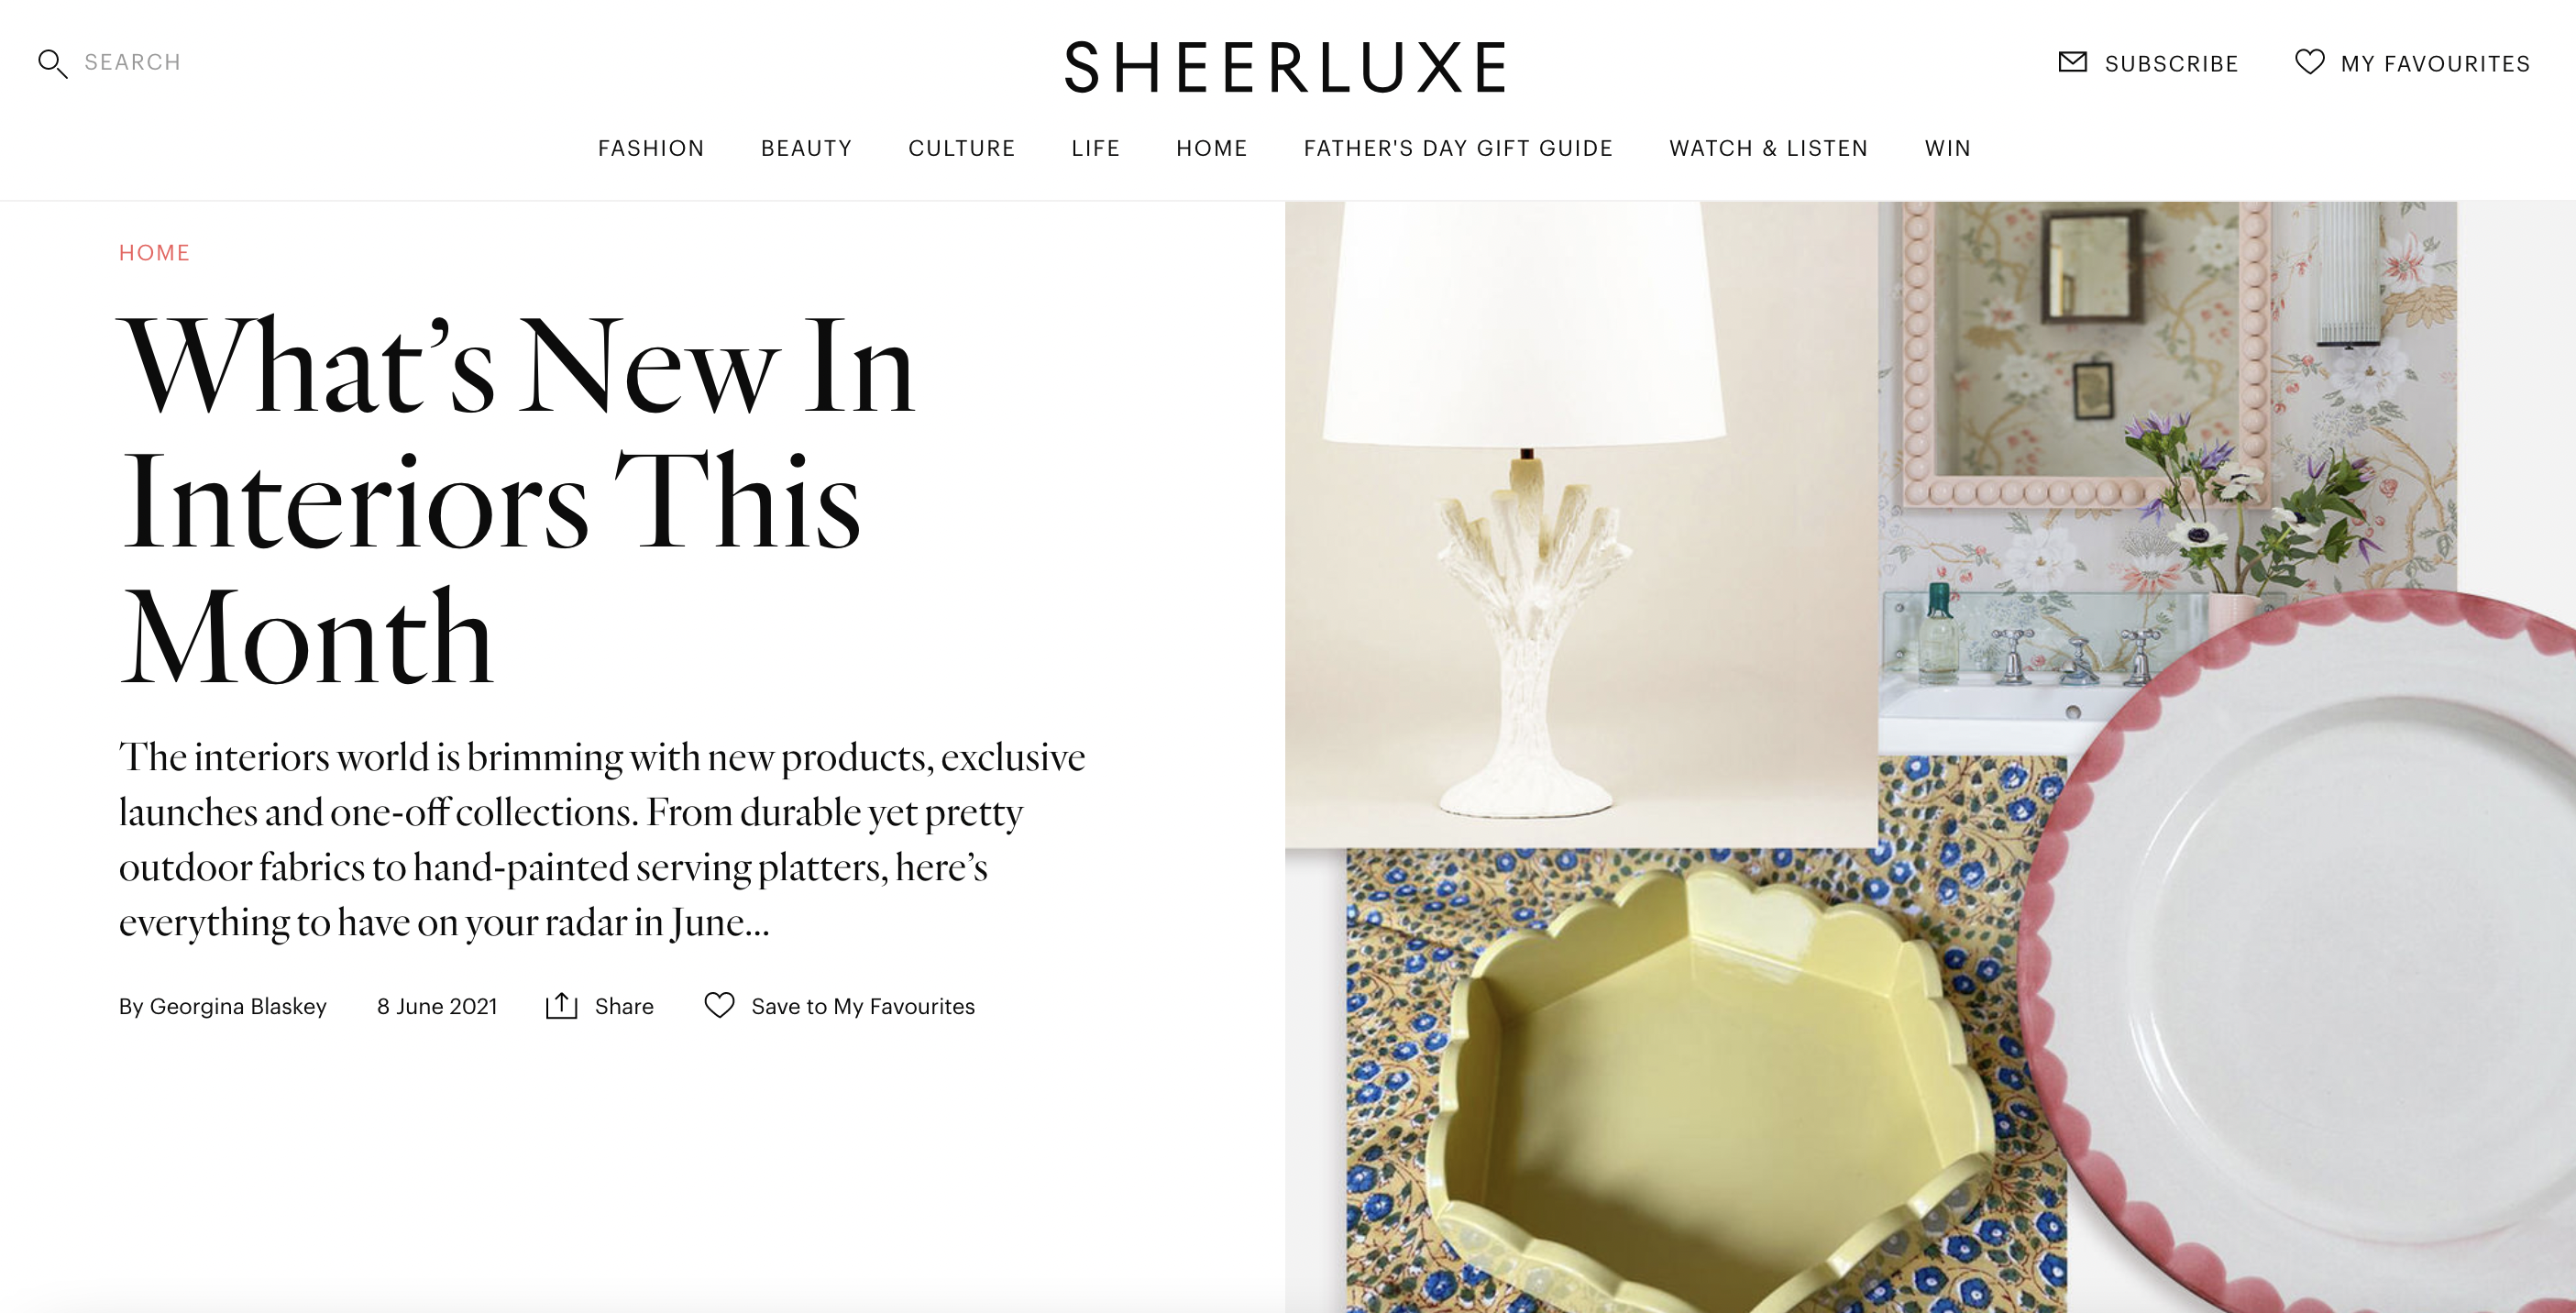 SHEERLUXE- 'What's New In Interiors This Month'